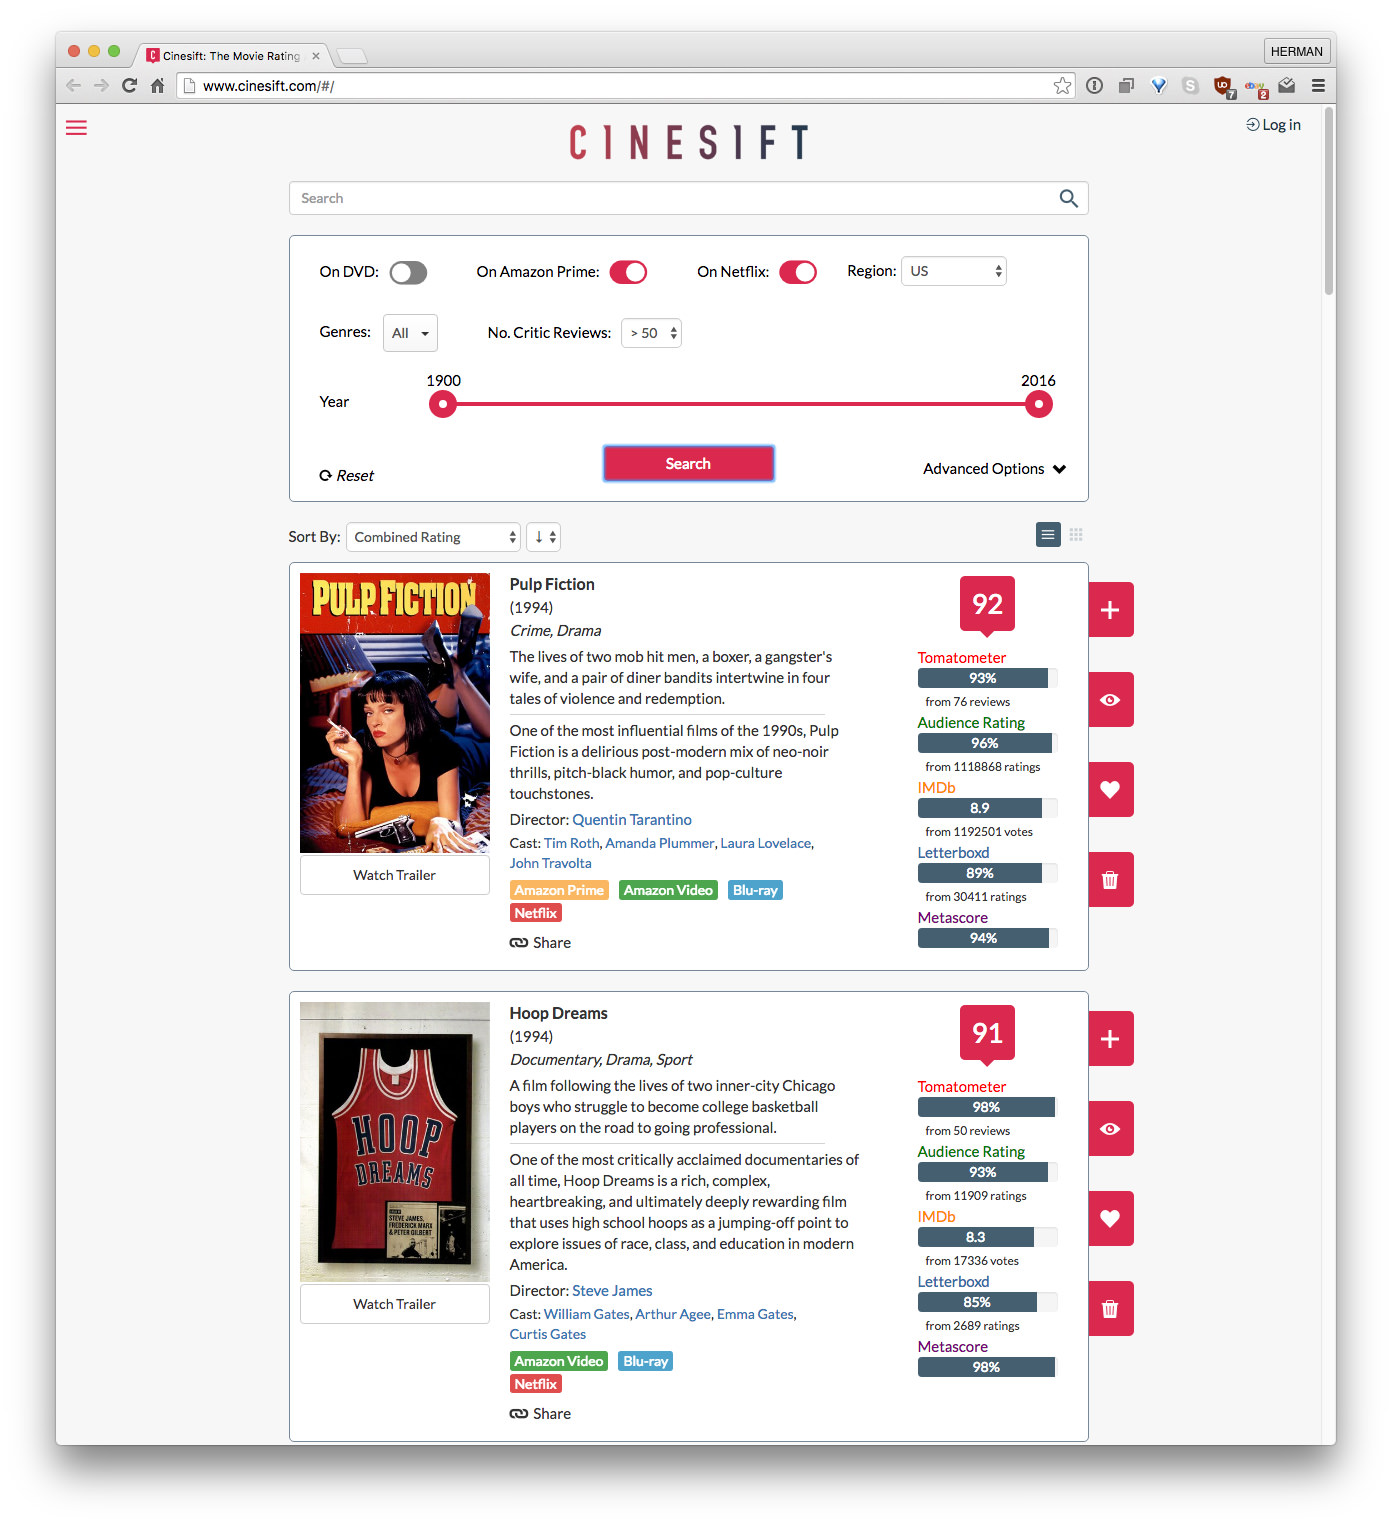 Cinesift combines popular movie site ratings with Amazon